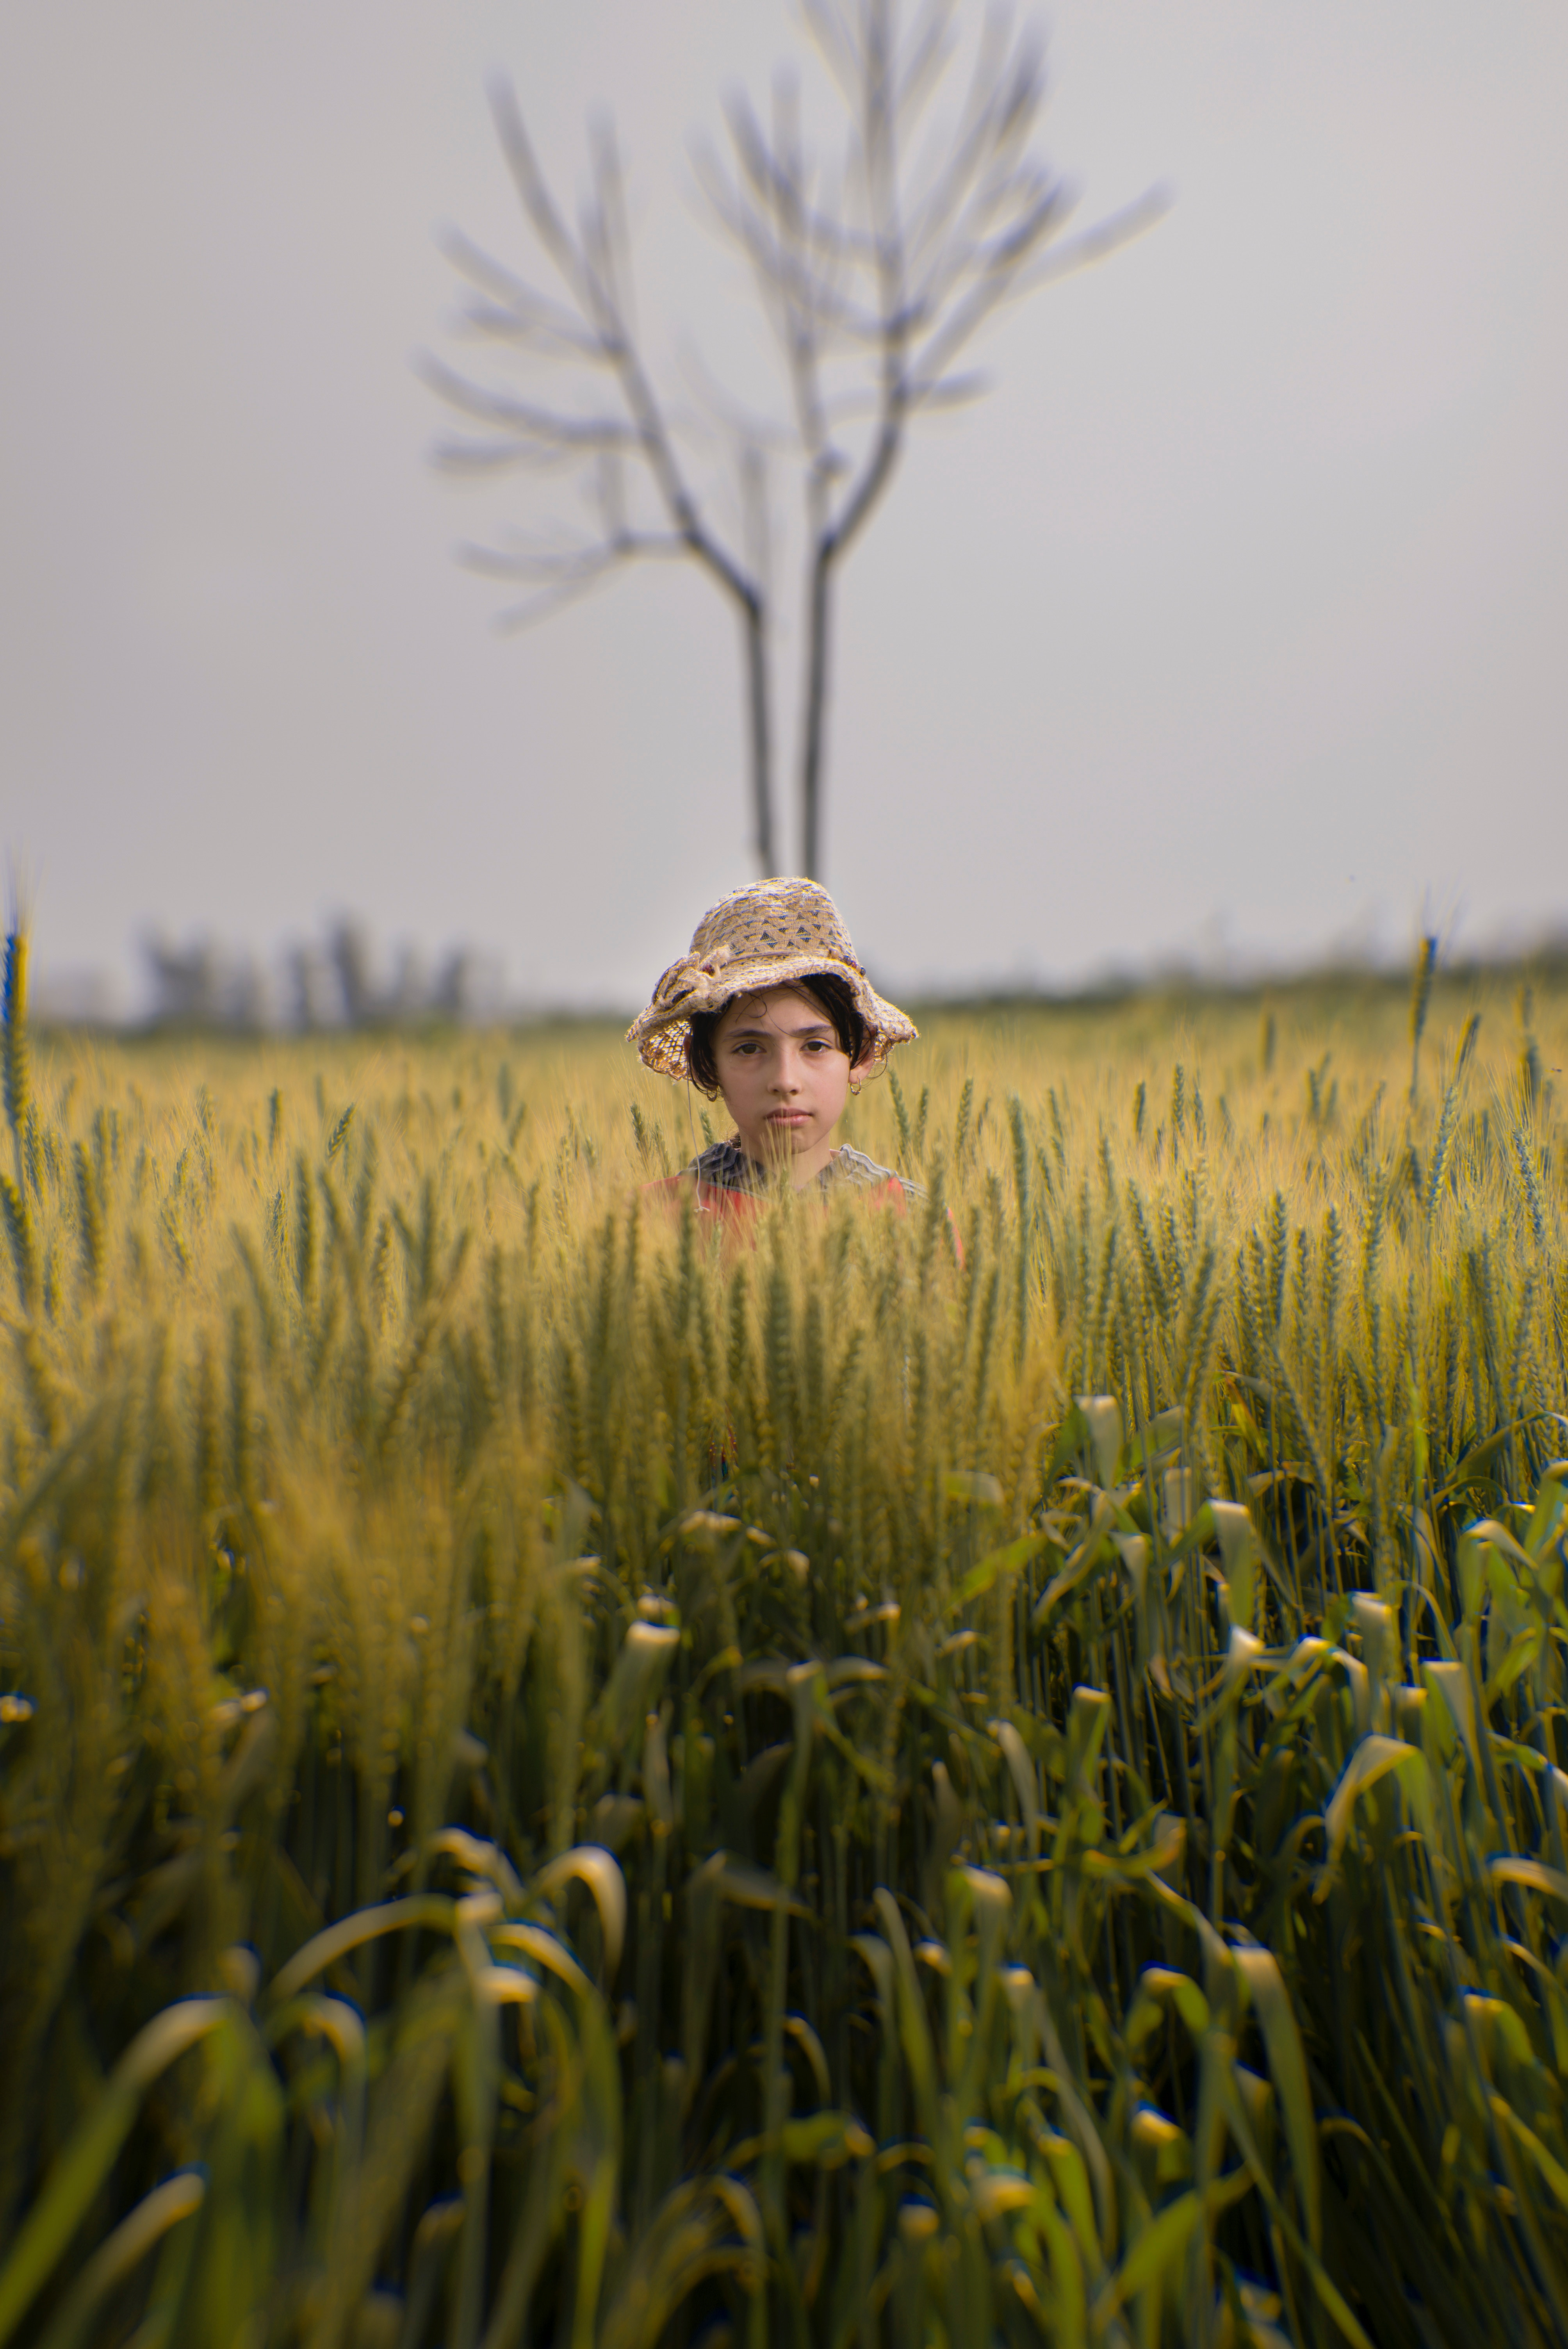 Toddler wearing brown hat in the middle of green field photo